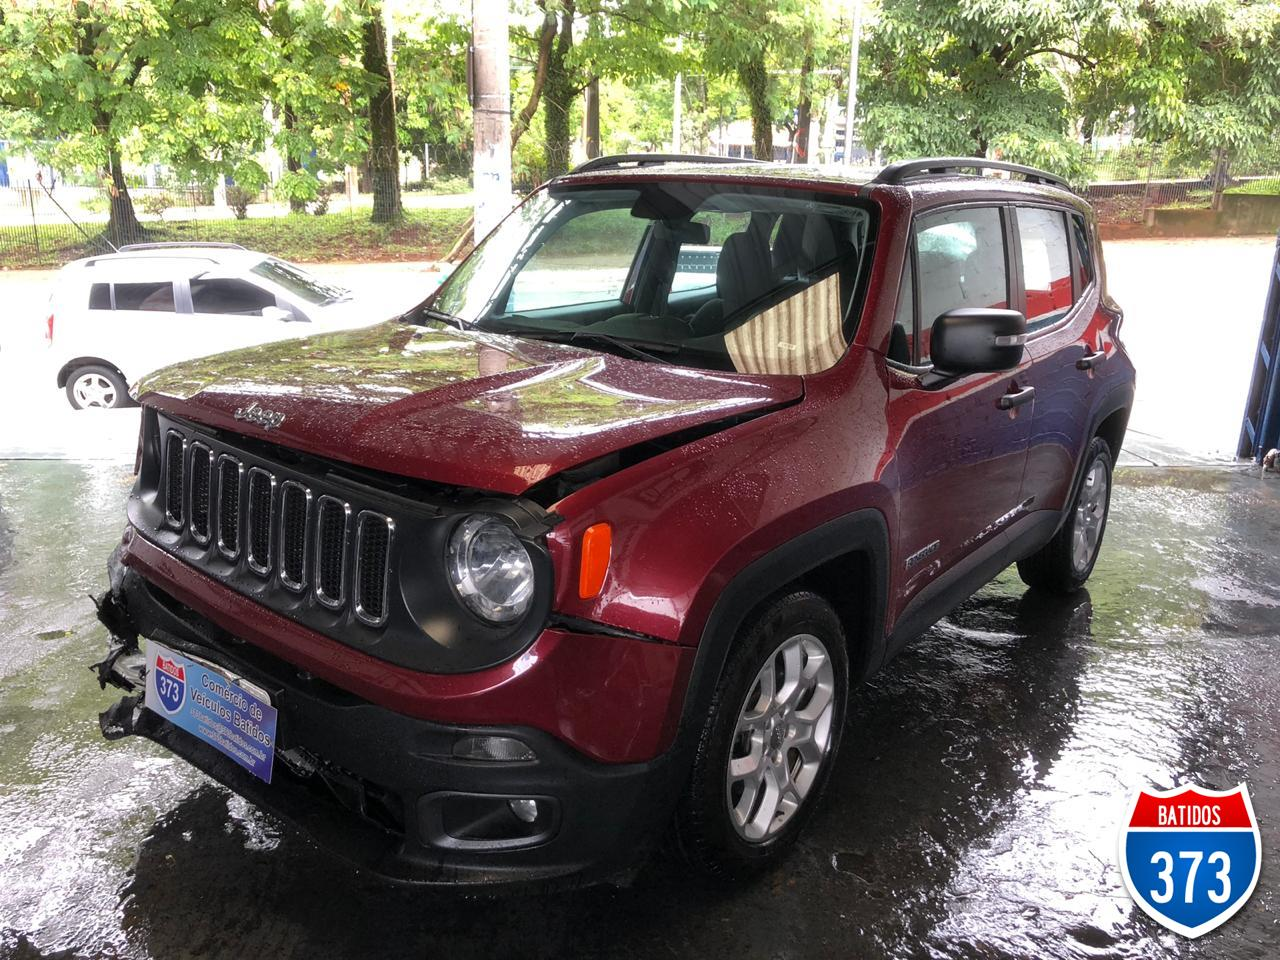 JEEP Renegade Sport 1.8 At  2018 Batido, Foto 16319